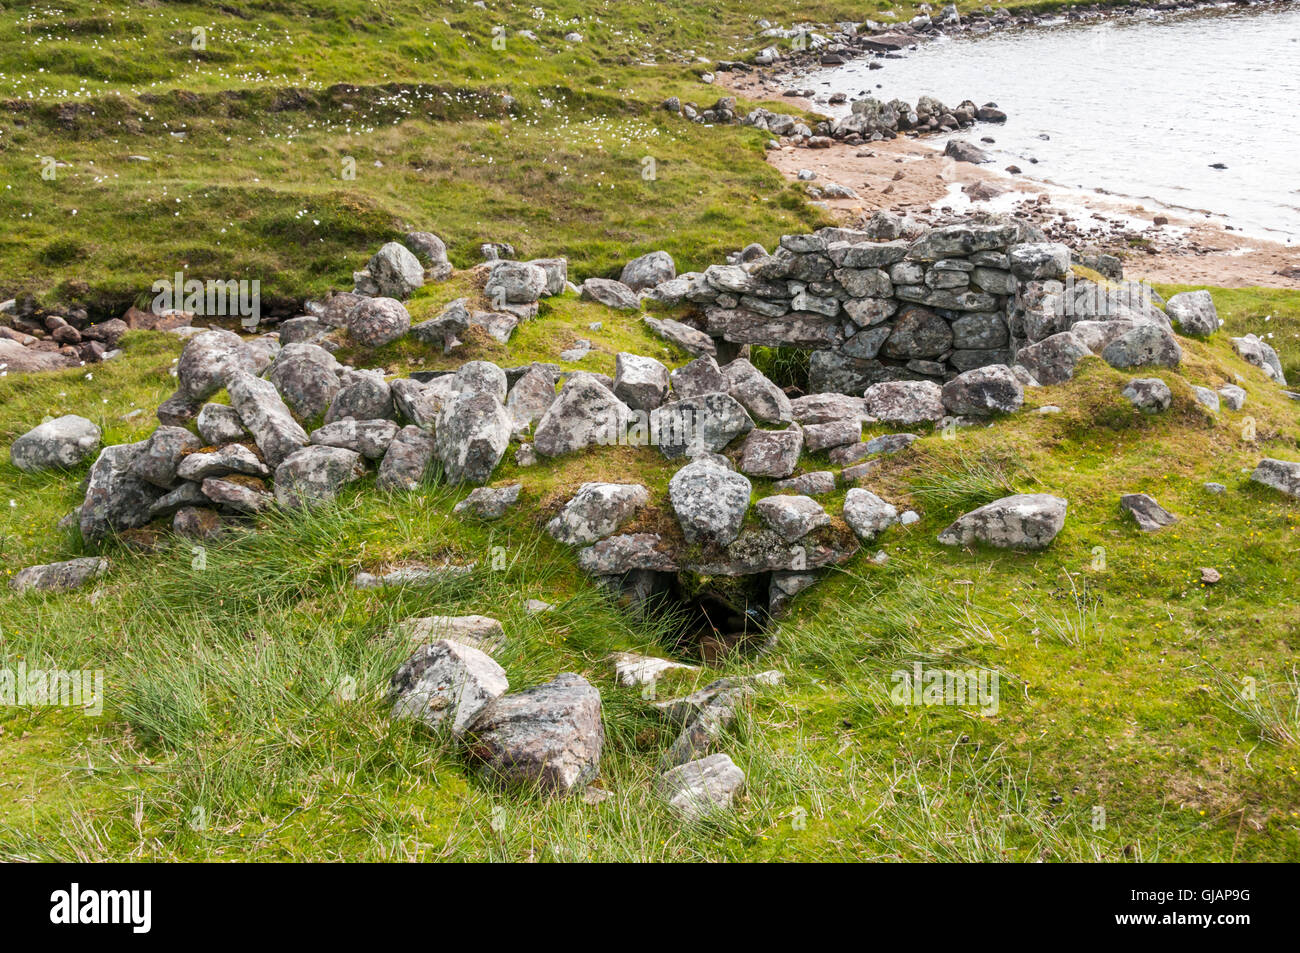 Remains of Norse style click mill at Loch Camasord near Crowlista in the Isle of Lewis. - Stock Image